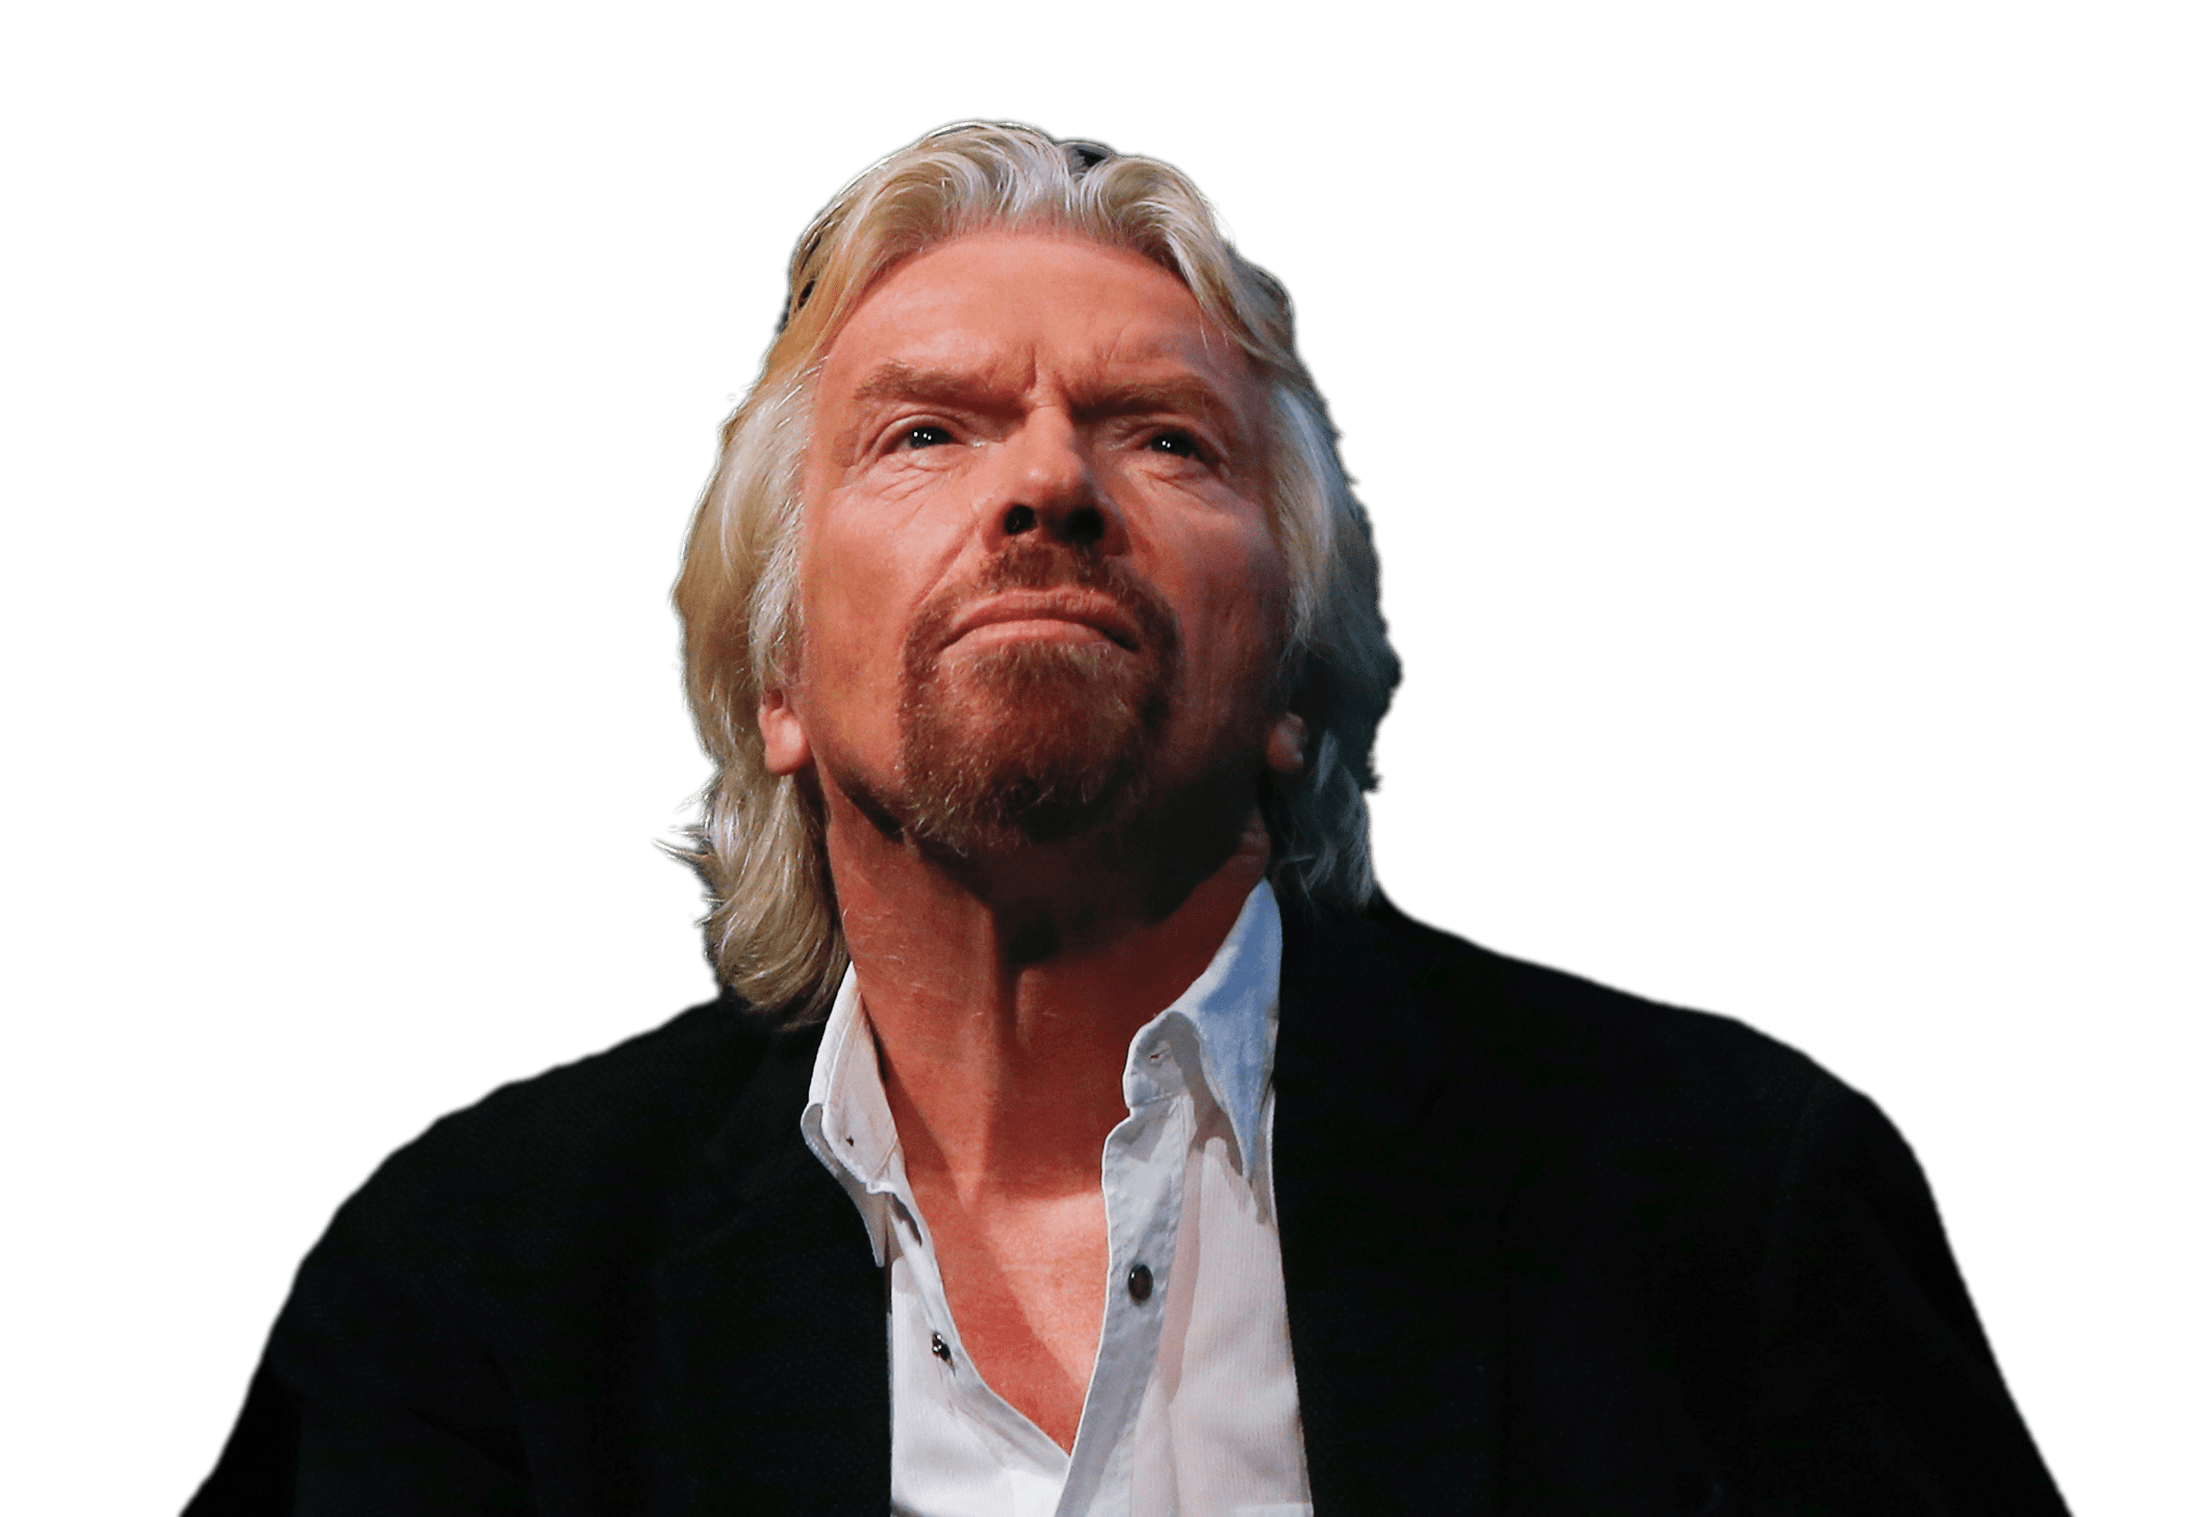 Richard Branson Looking Up transparent PNG.